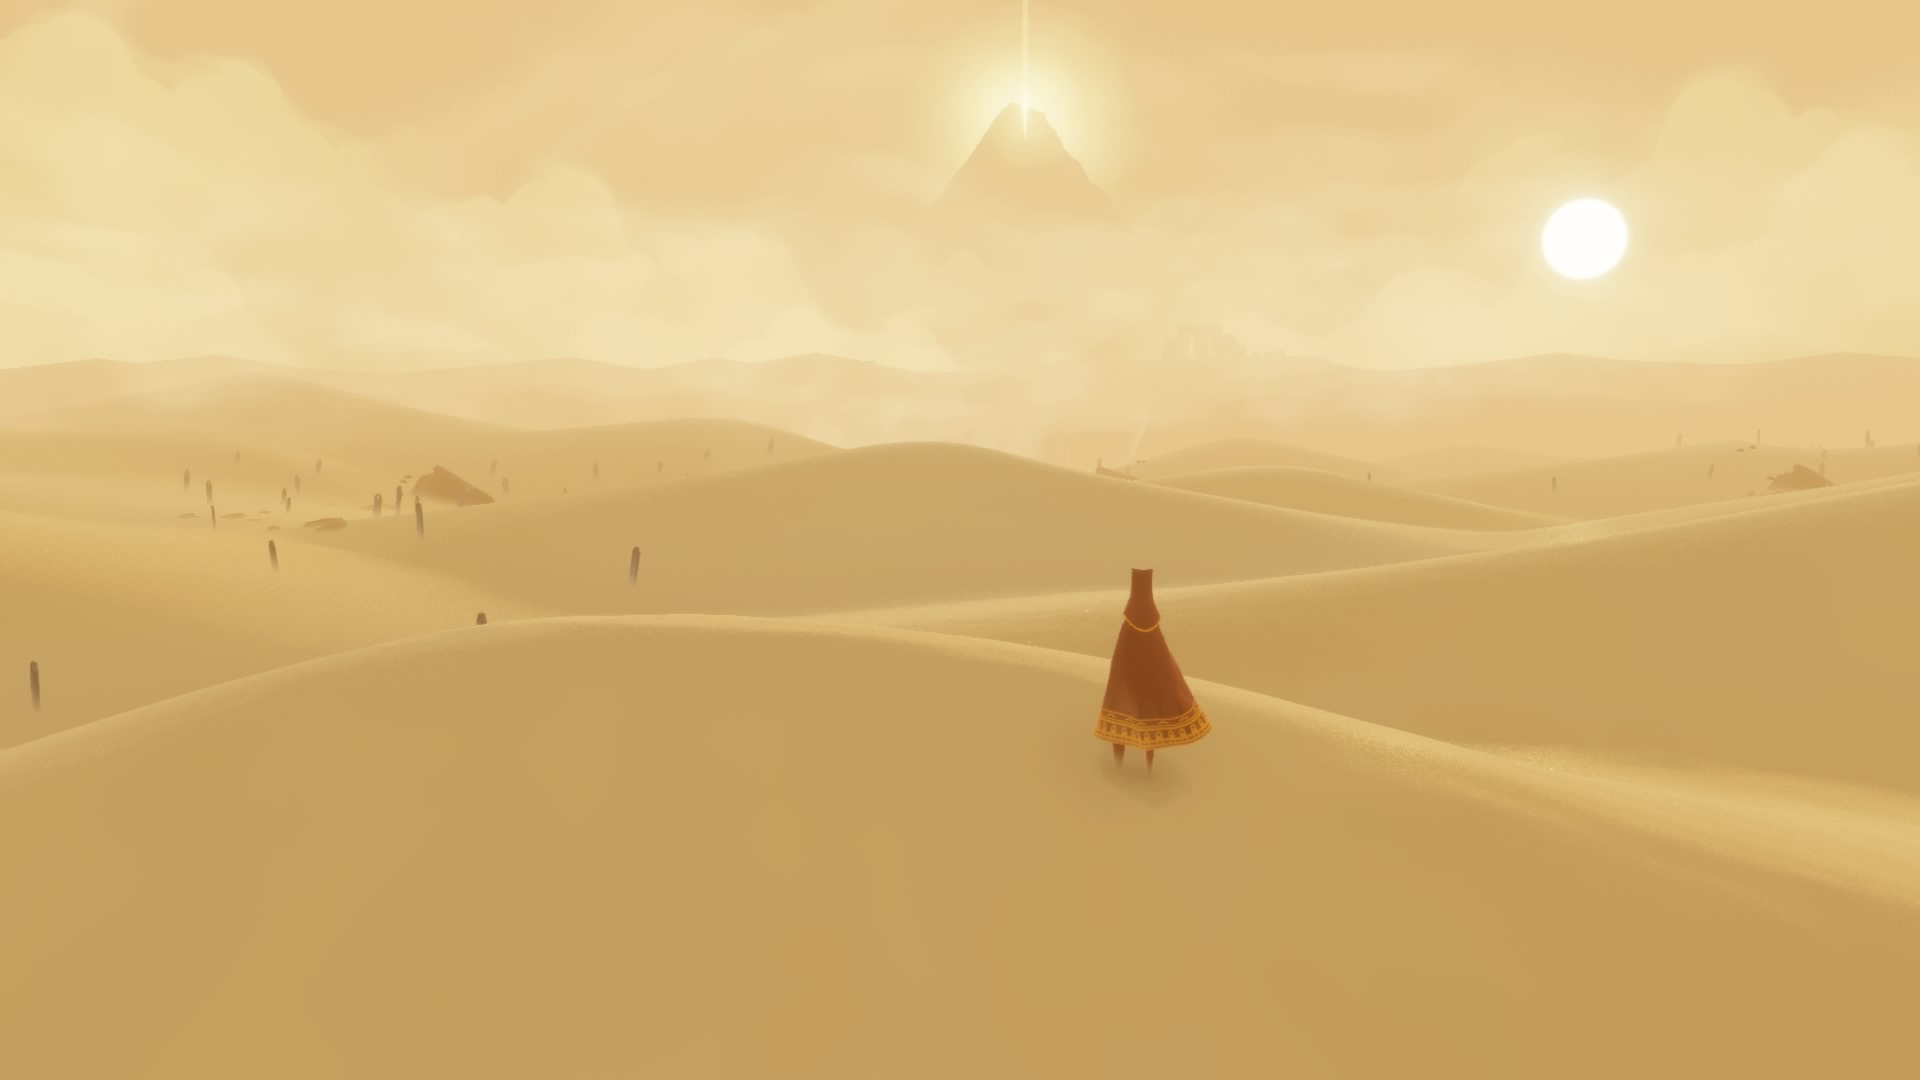 Captura de pantalla de Journey